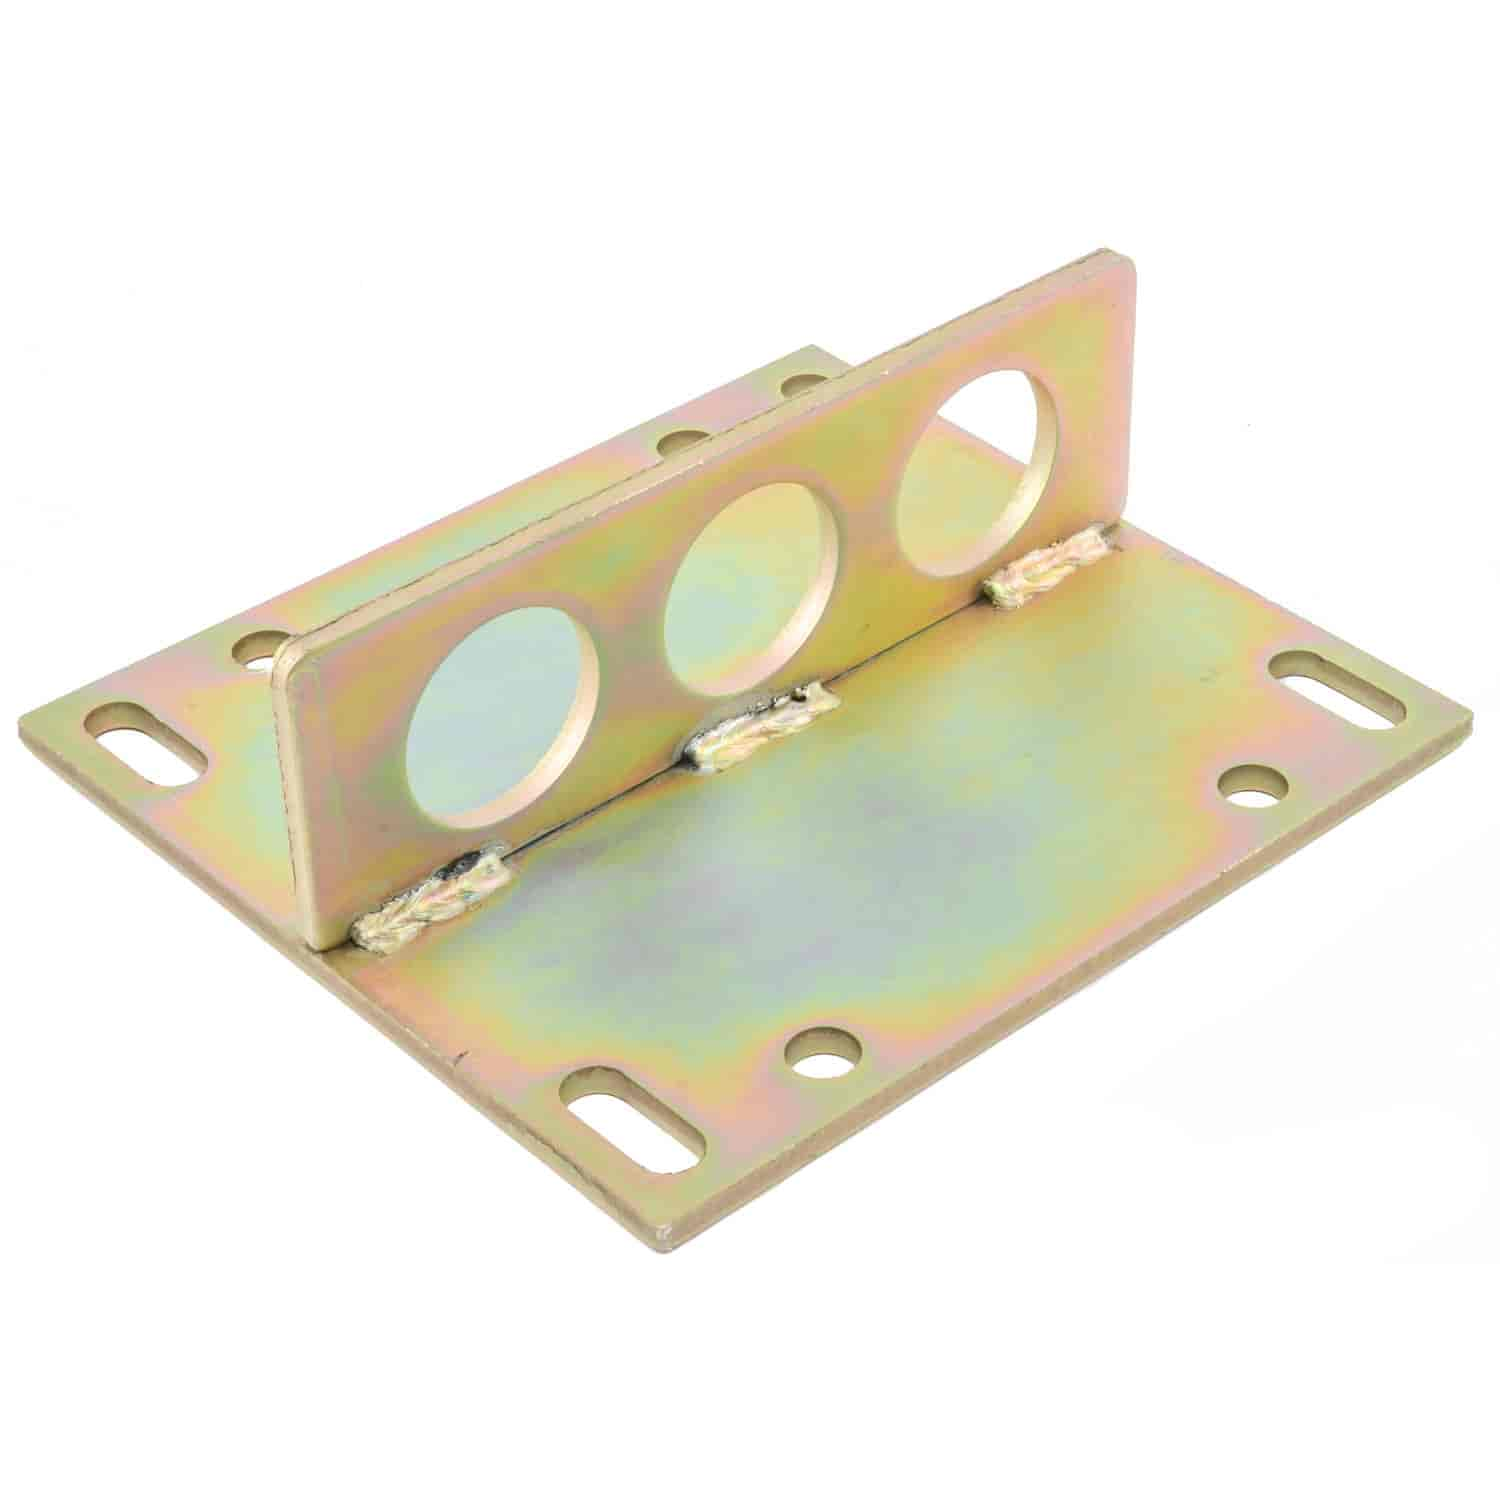 Mr. Gasket 33027G - Mr. Gasket Engine Lift Plate